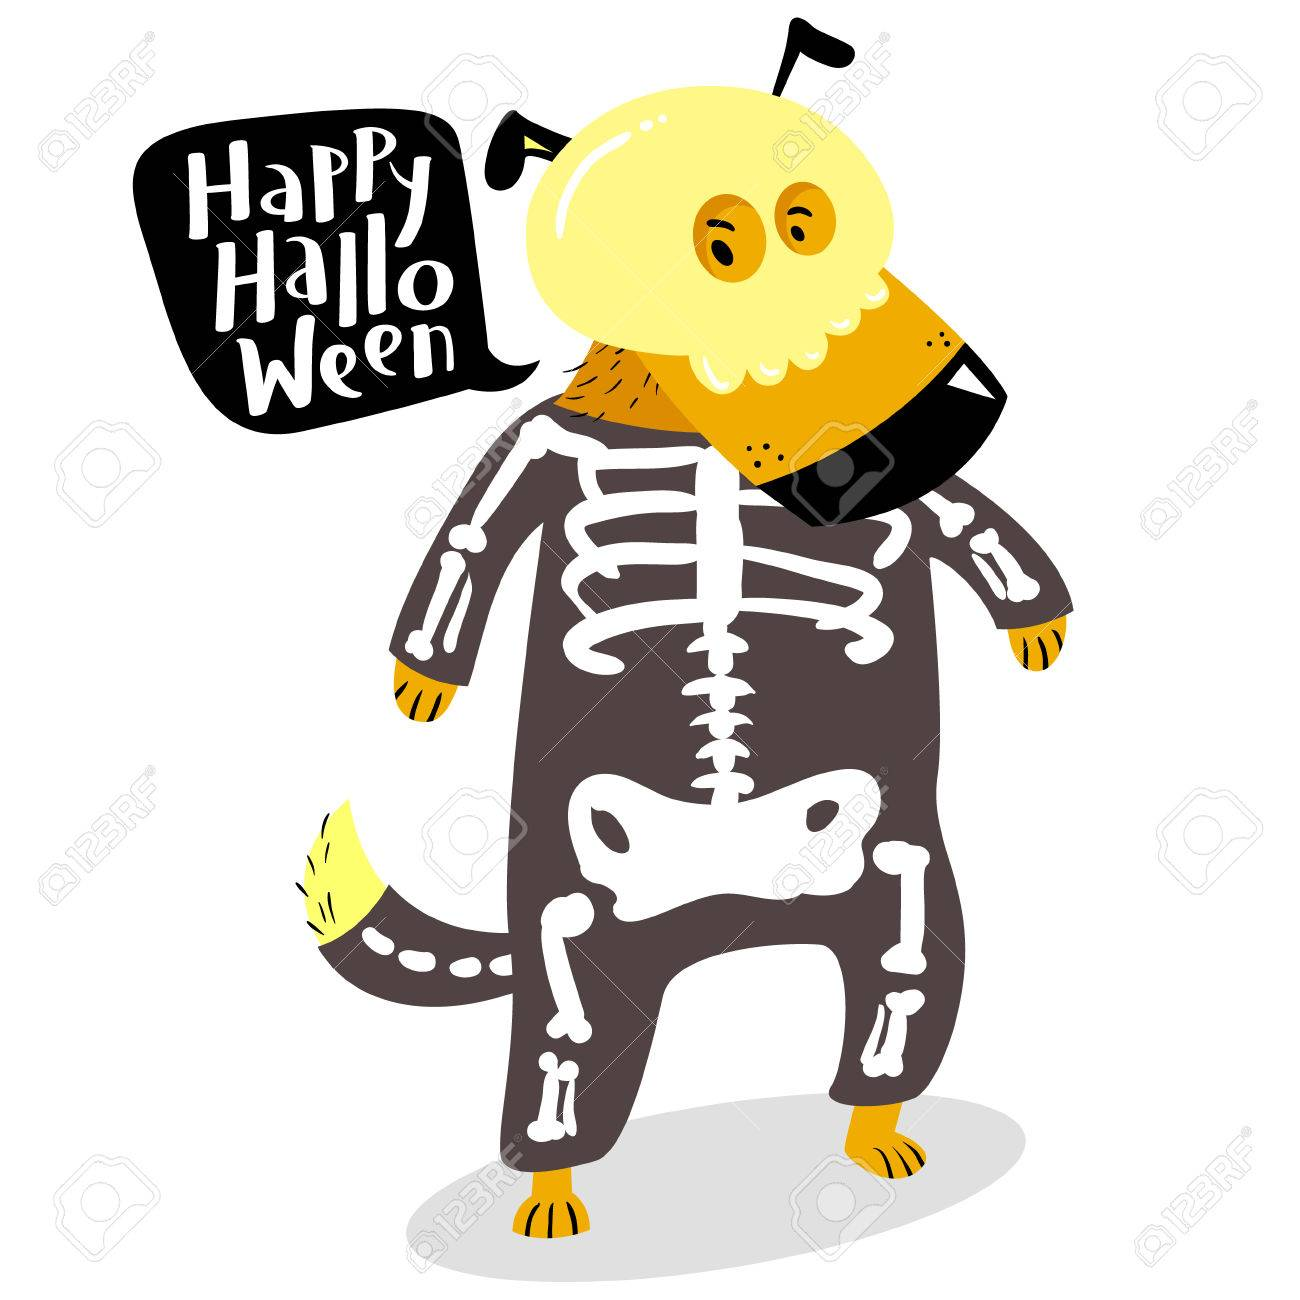 Halloween dog character in skeleton costume with skull and bones. Happy Halloween lettering in speech  sc 1 st  123RF.com & Halloween Dog Character In Skeleton Costume With Skull And Bones ...